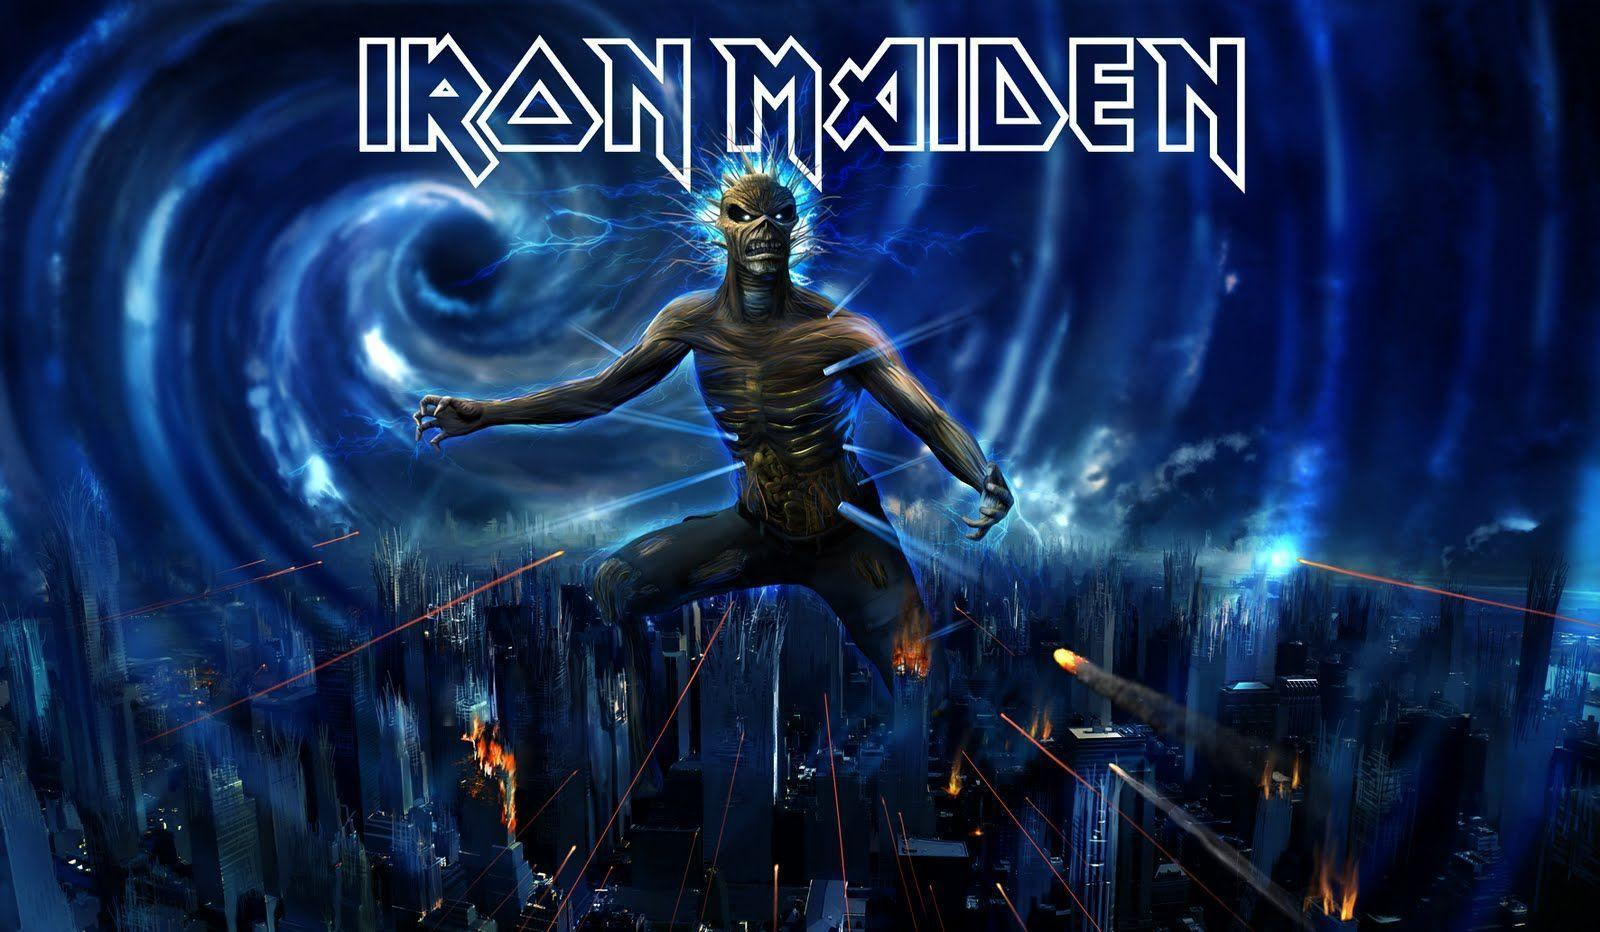 Iron Maiden Hd Wallpapers Wallpaper Cave